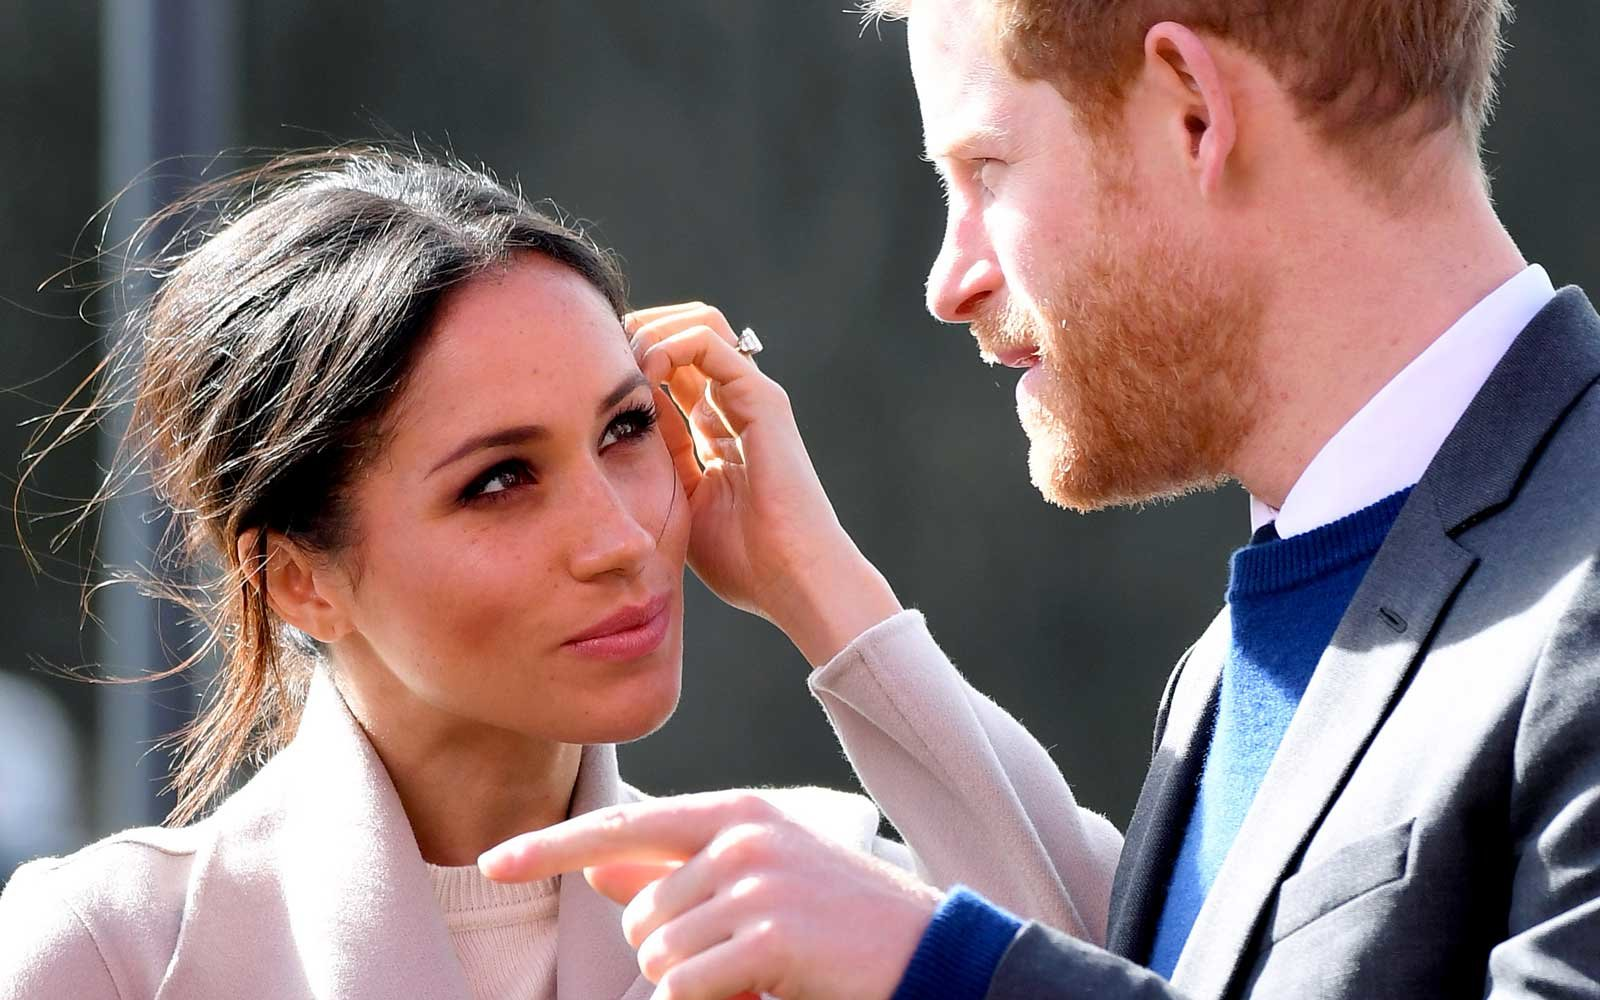 Where Prince Harry And Meghan Markle Are Staying The Night